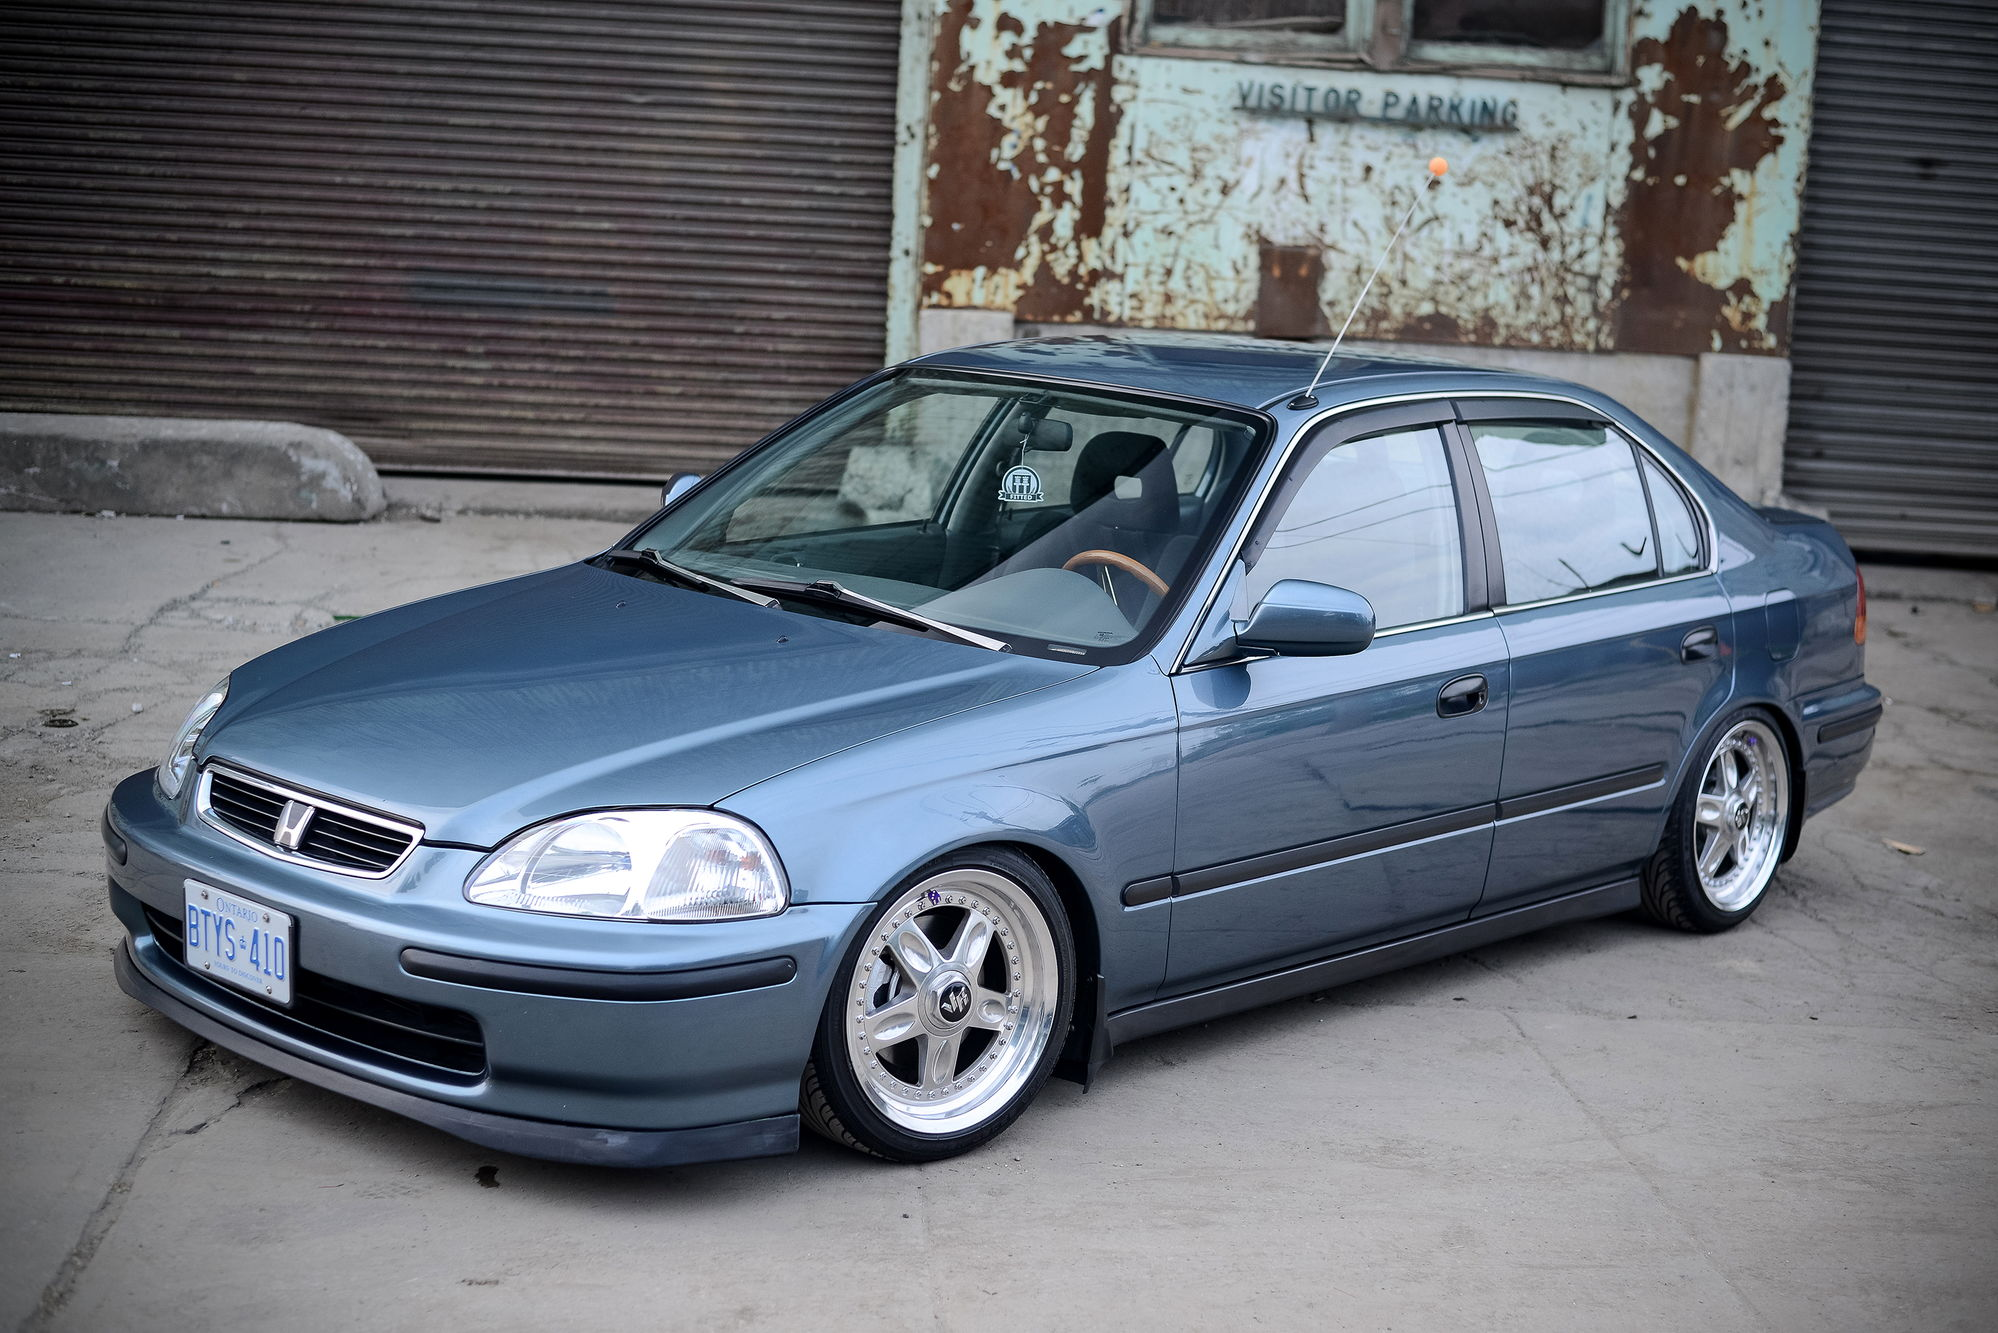 Ca Jdm 1996 Honda Civic Ex Ek4 Build 6000 San